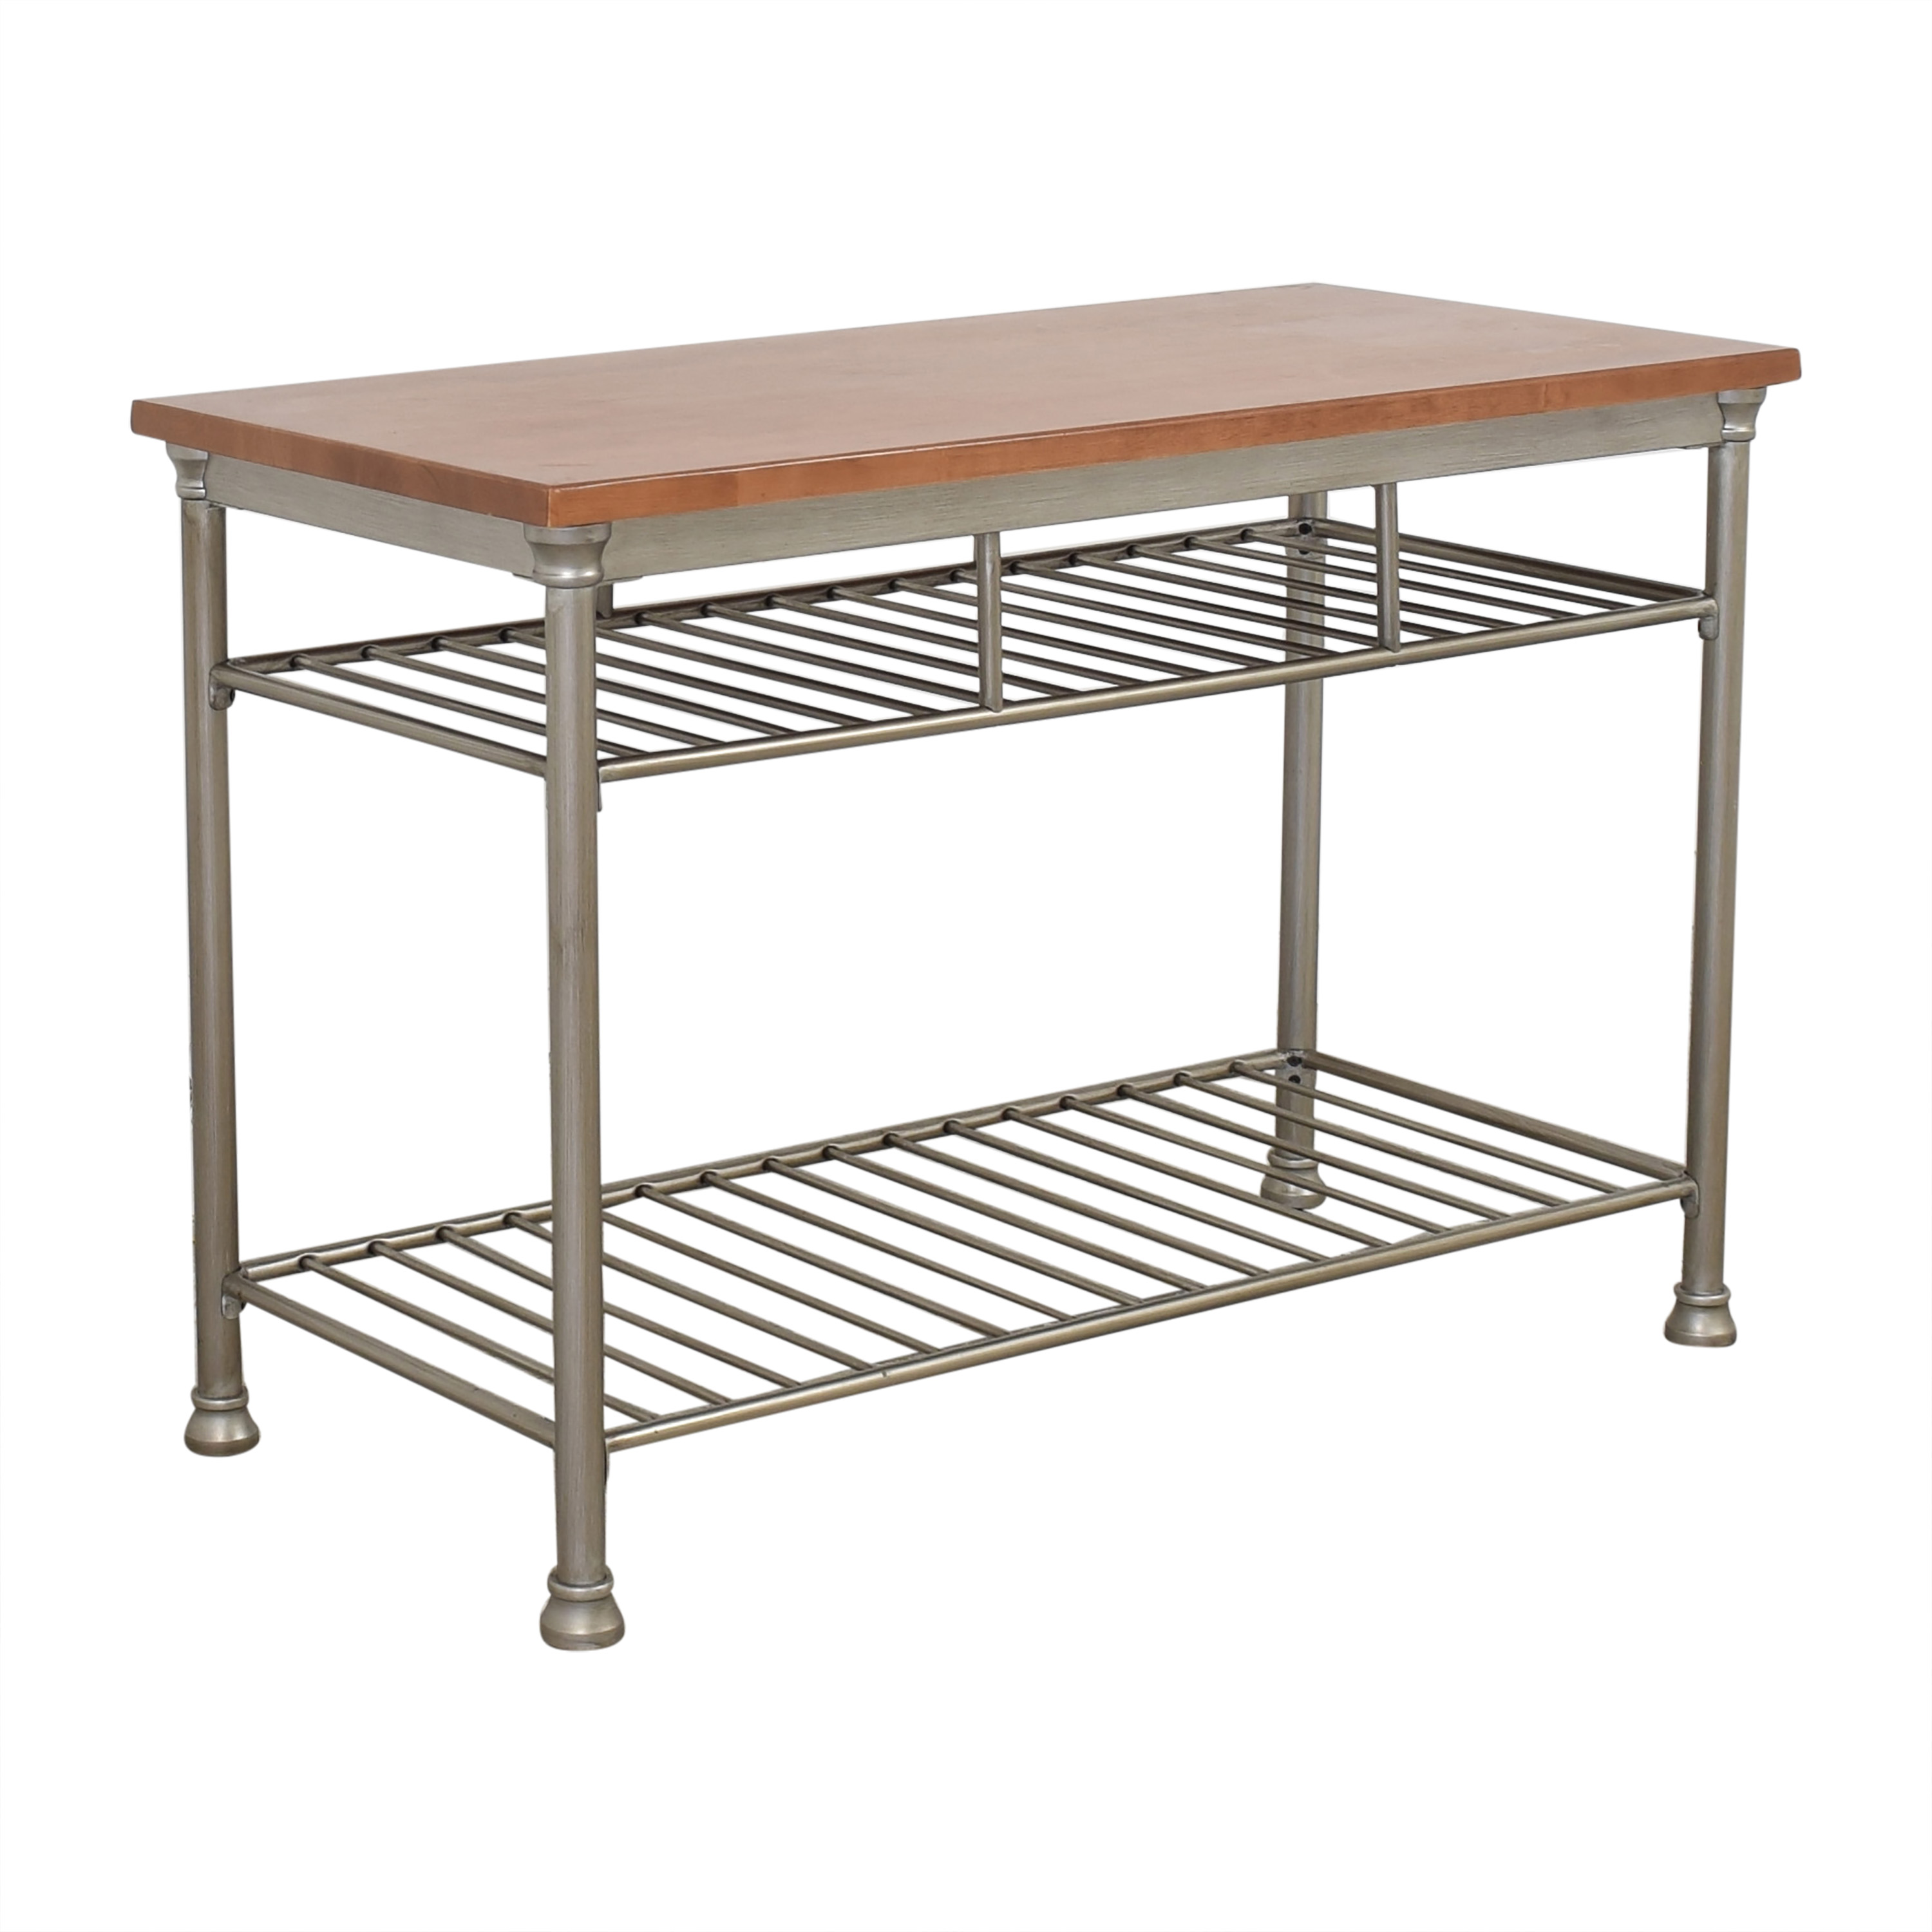 Home Styles Home Styles Orleans Wire Rack Kitchen Island with Caramel Butcher Block Top Utility Tables